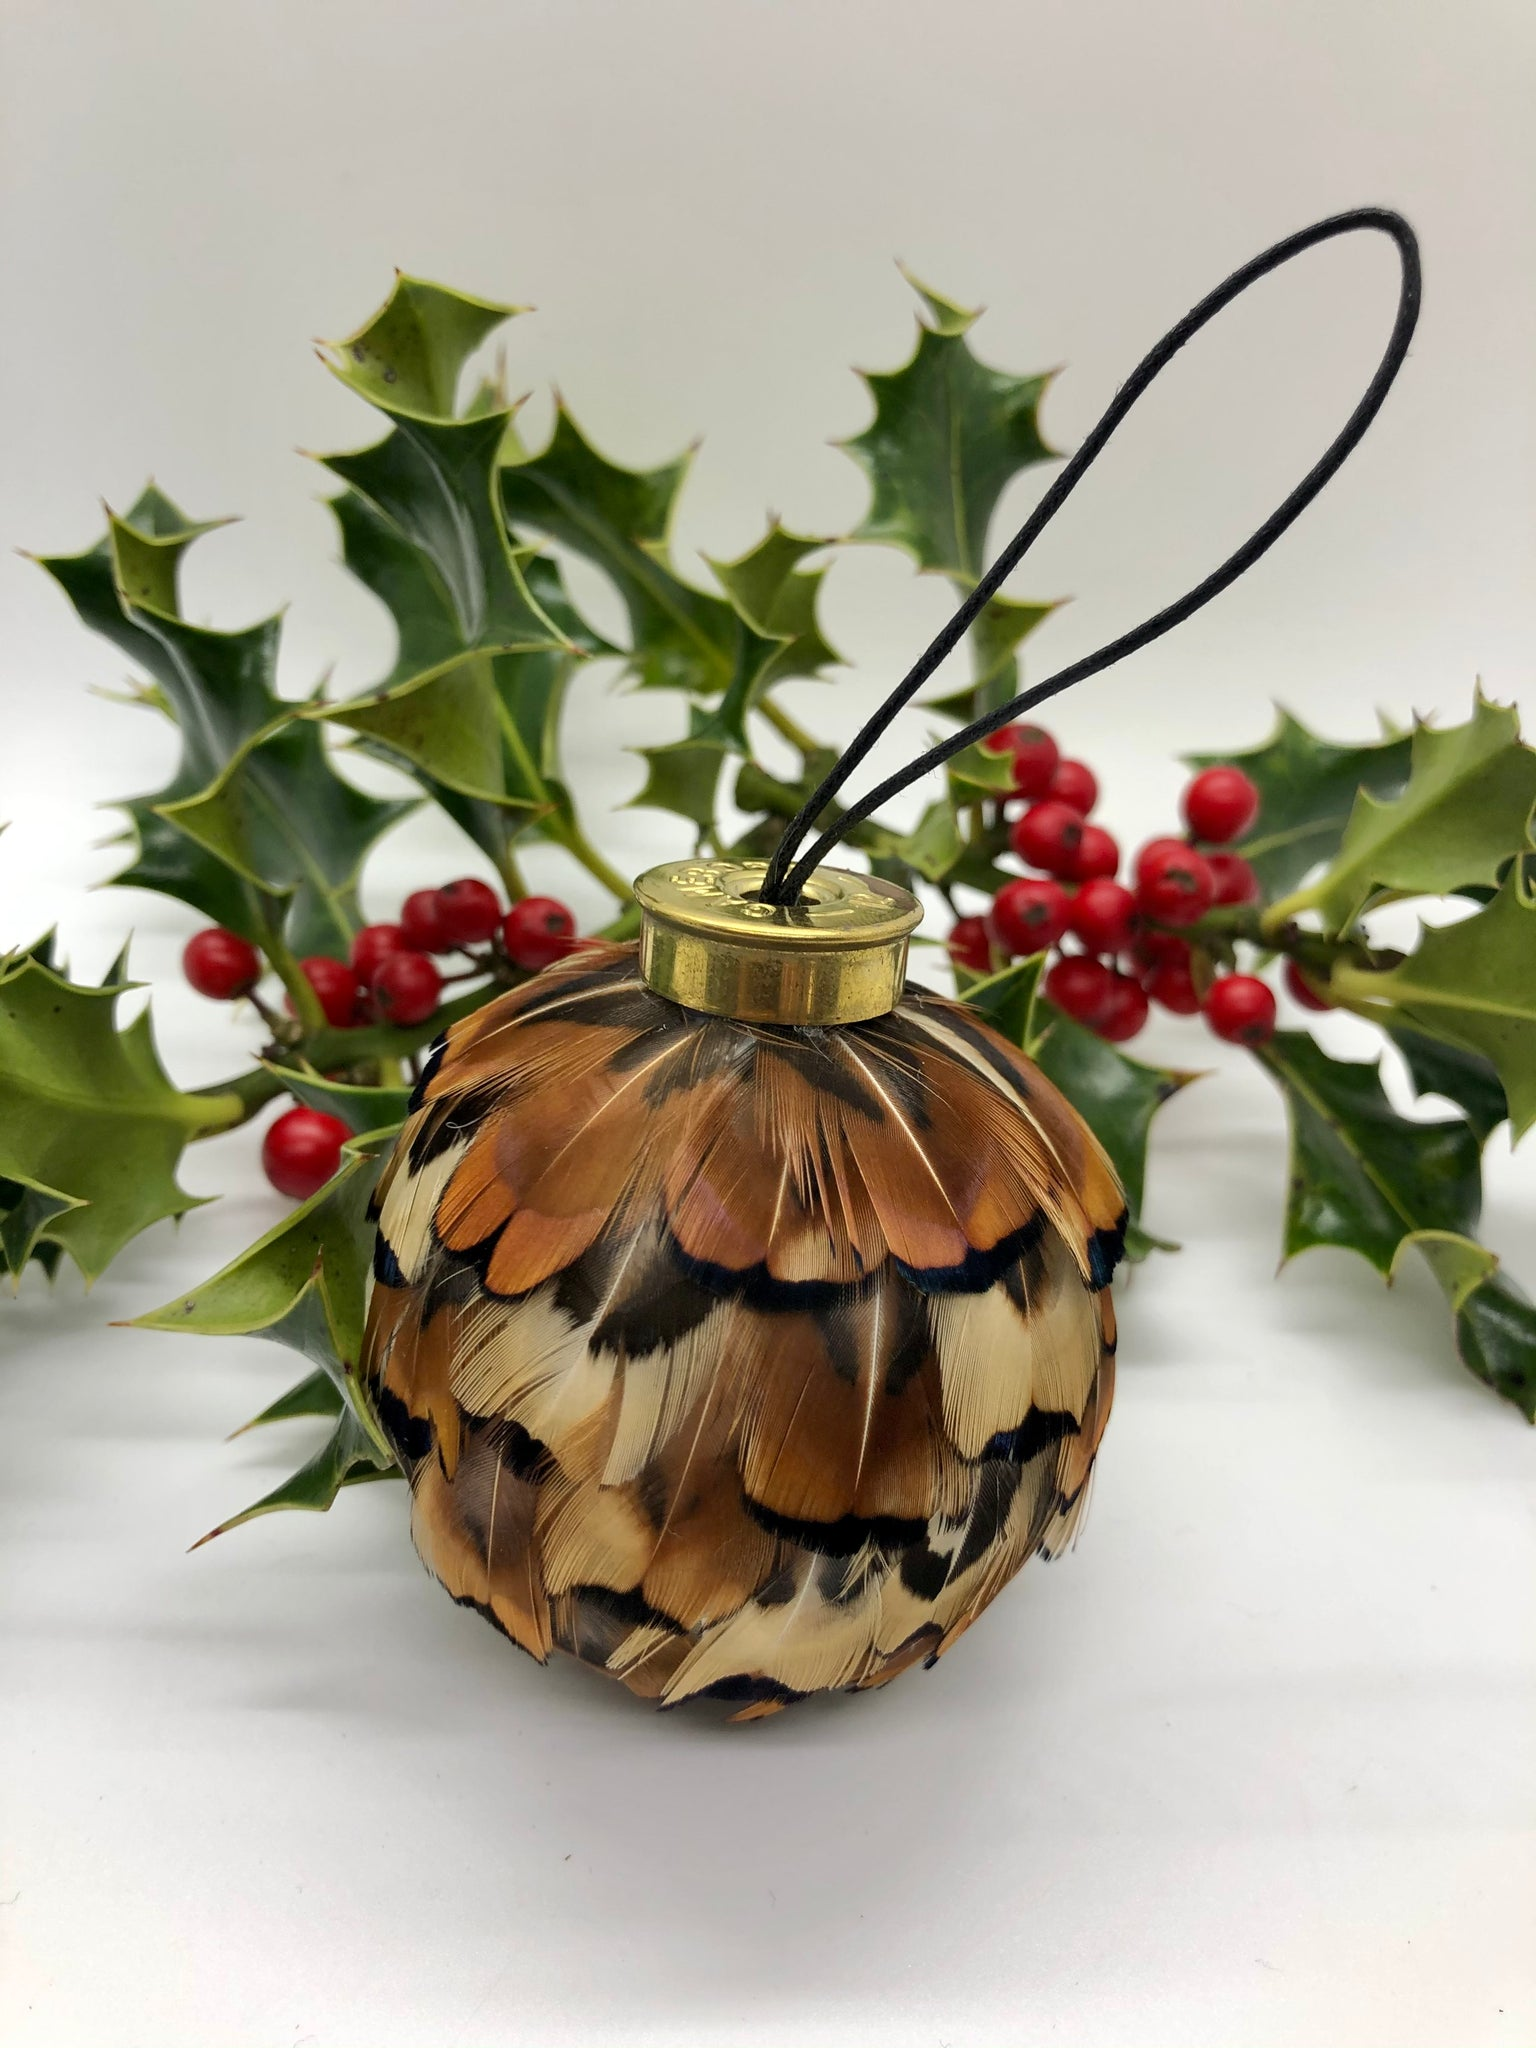 The Festive Feather Bauble